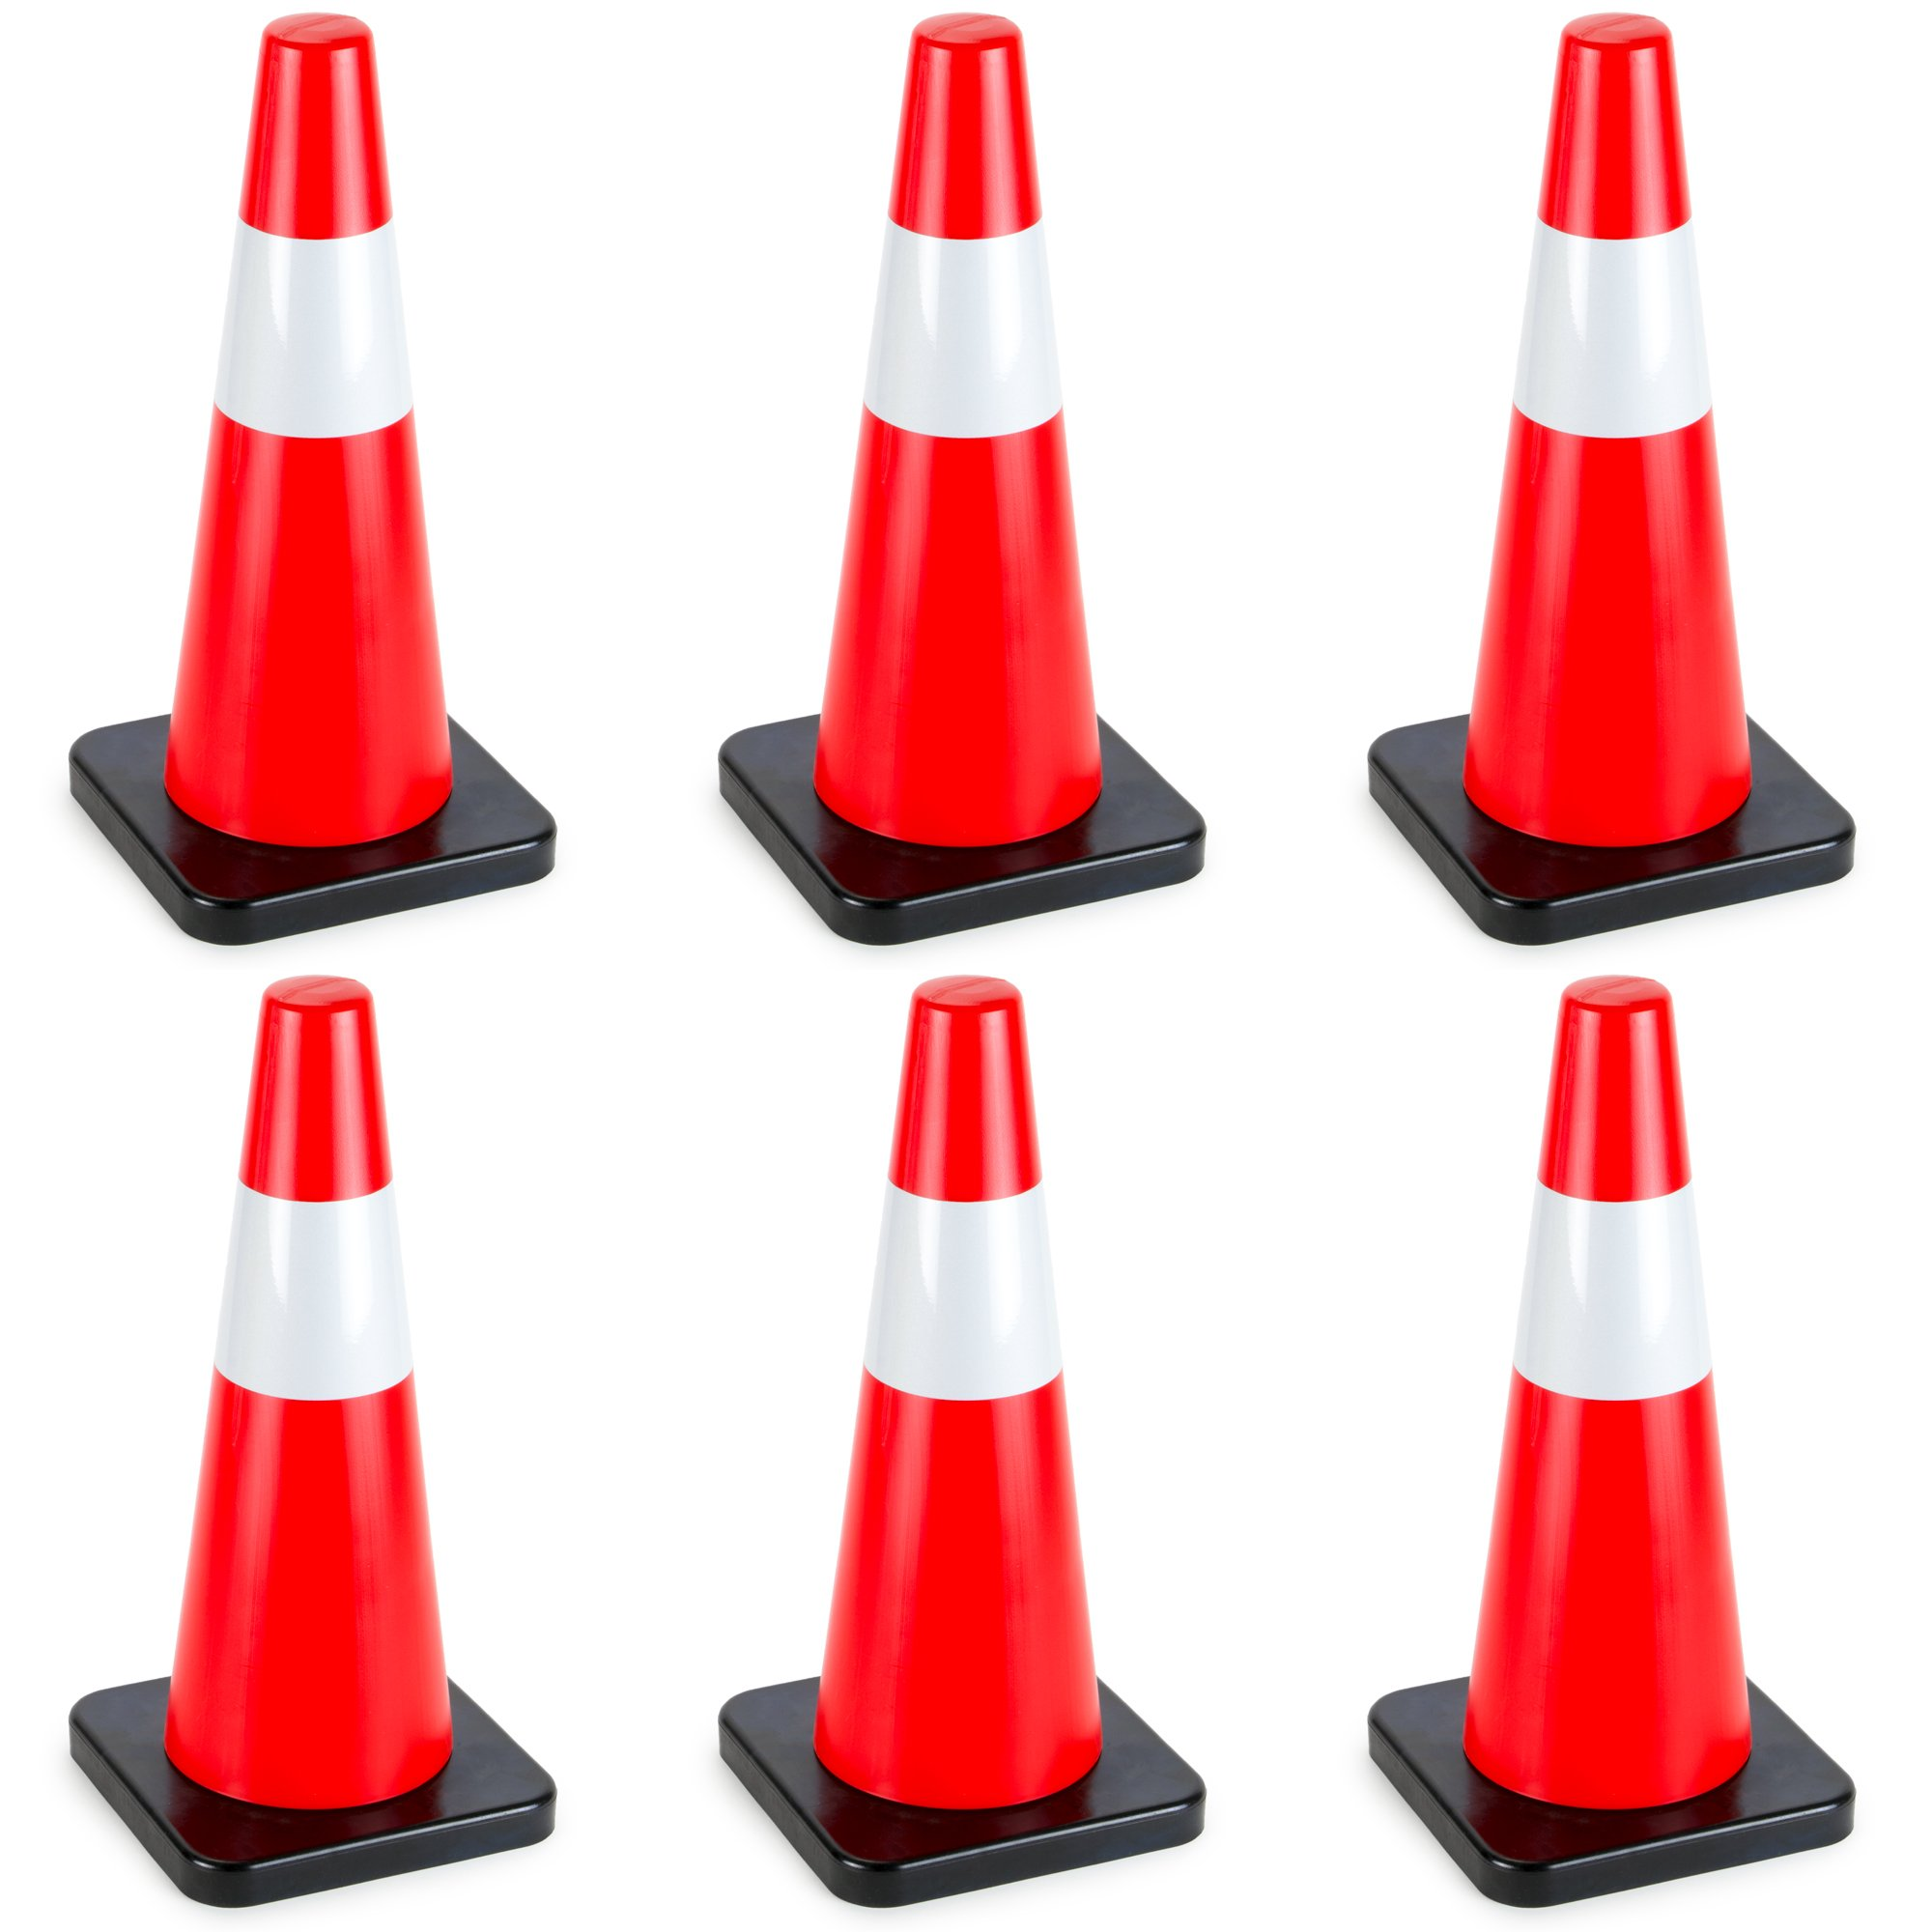 18'' High Hat Cones in Fluorescent Orange with Reflective Sleeve and Black Base for Indoor/Outdoor Traffic Work Area Safety Marker & Agility Sport Training by Bolthead Industrial (6-pack)